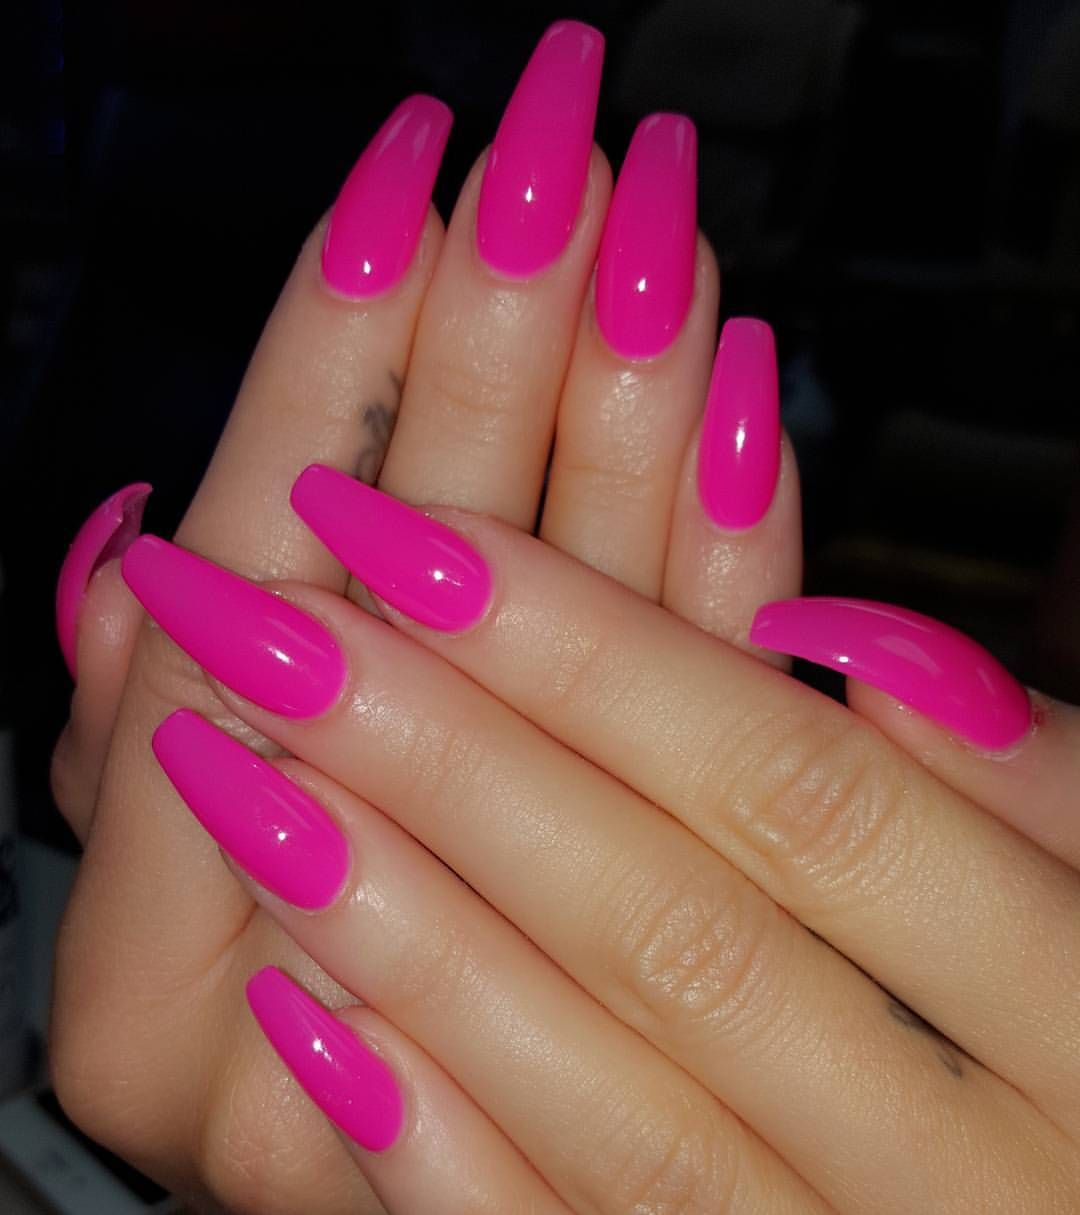 Pink Coffin Nails With Images Pink Nail Colors Pink Acrylic